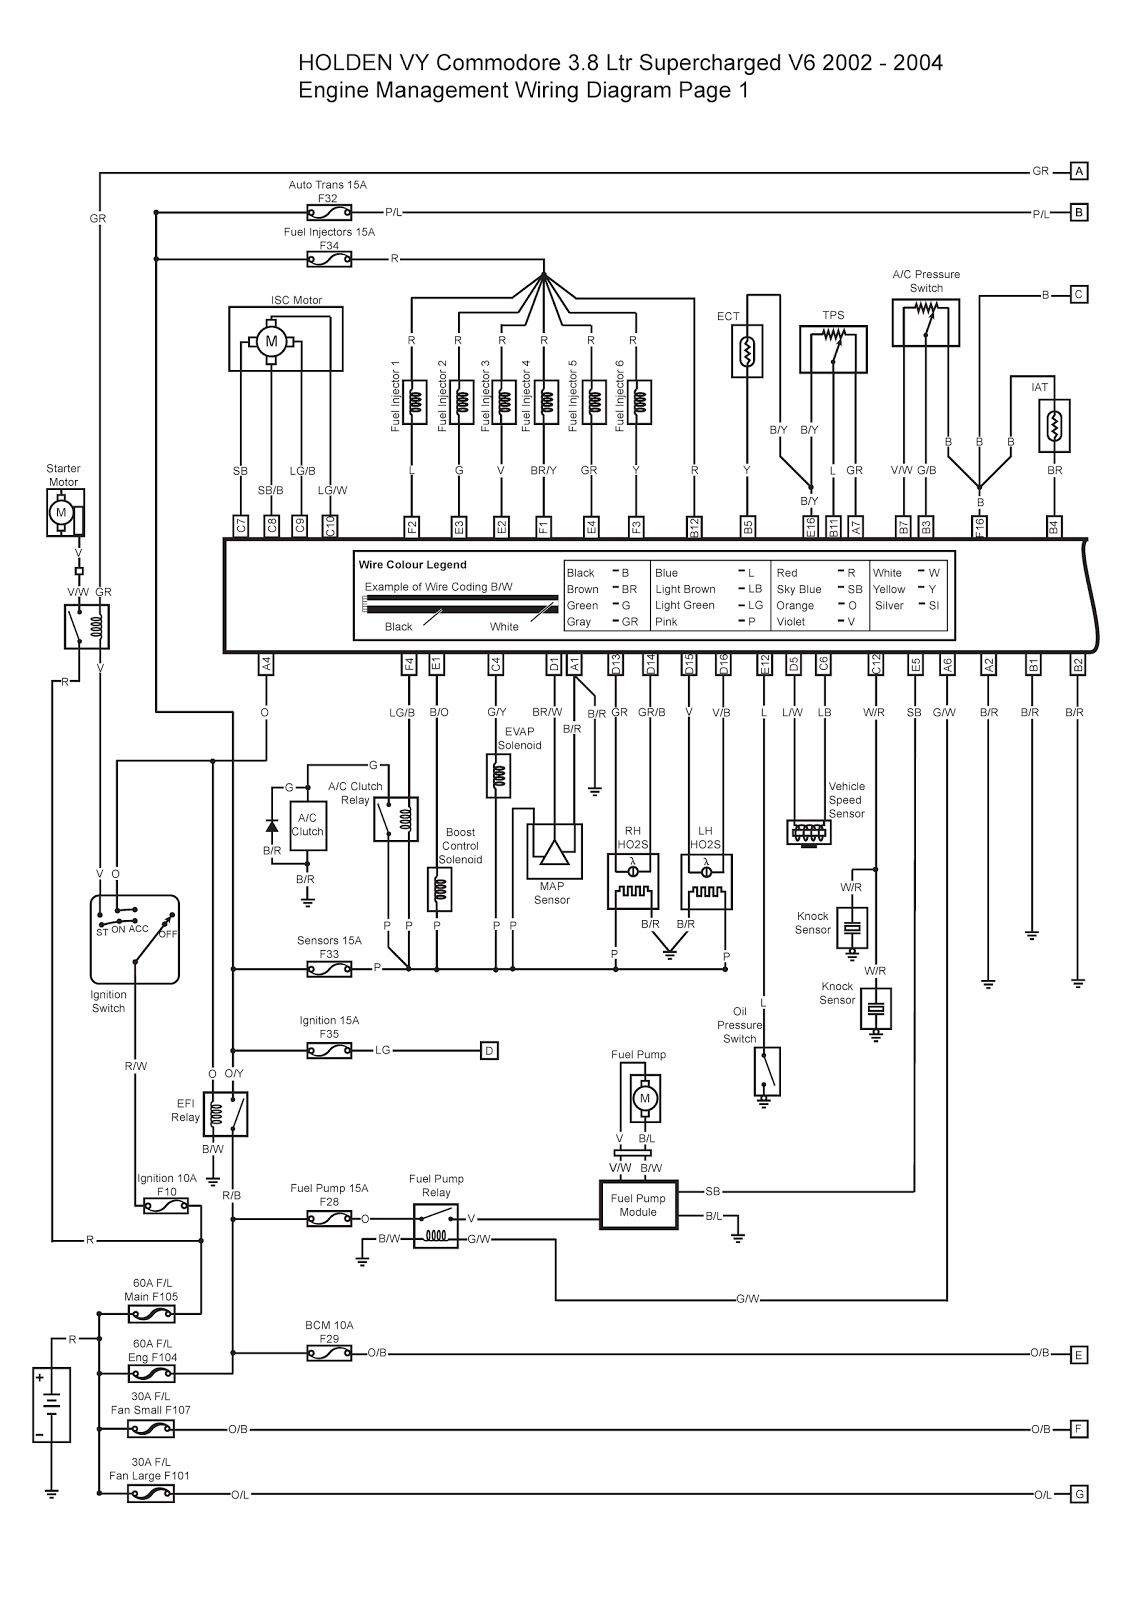 0001 vz wiring diagram efcaviation com vz bcm wiring diagram at edmiracle.co